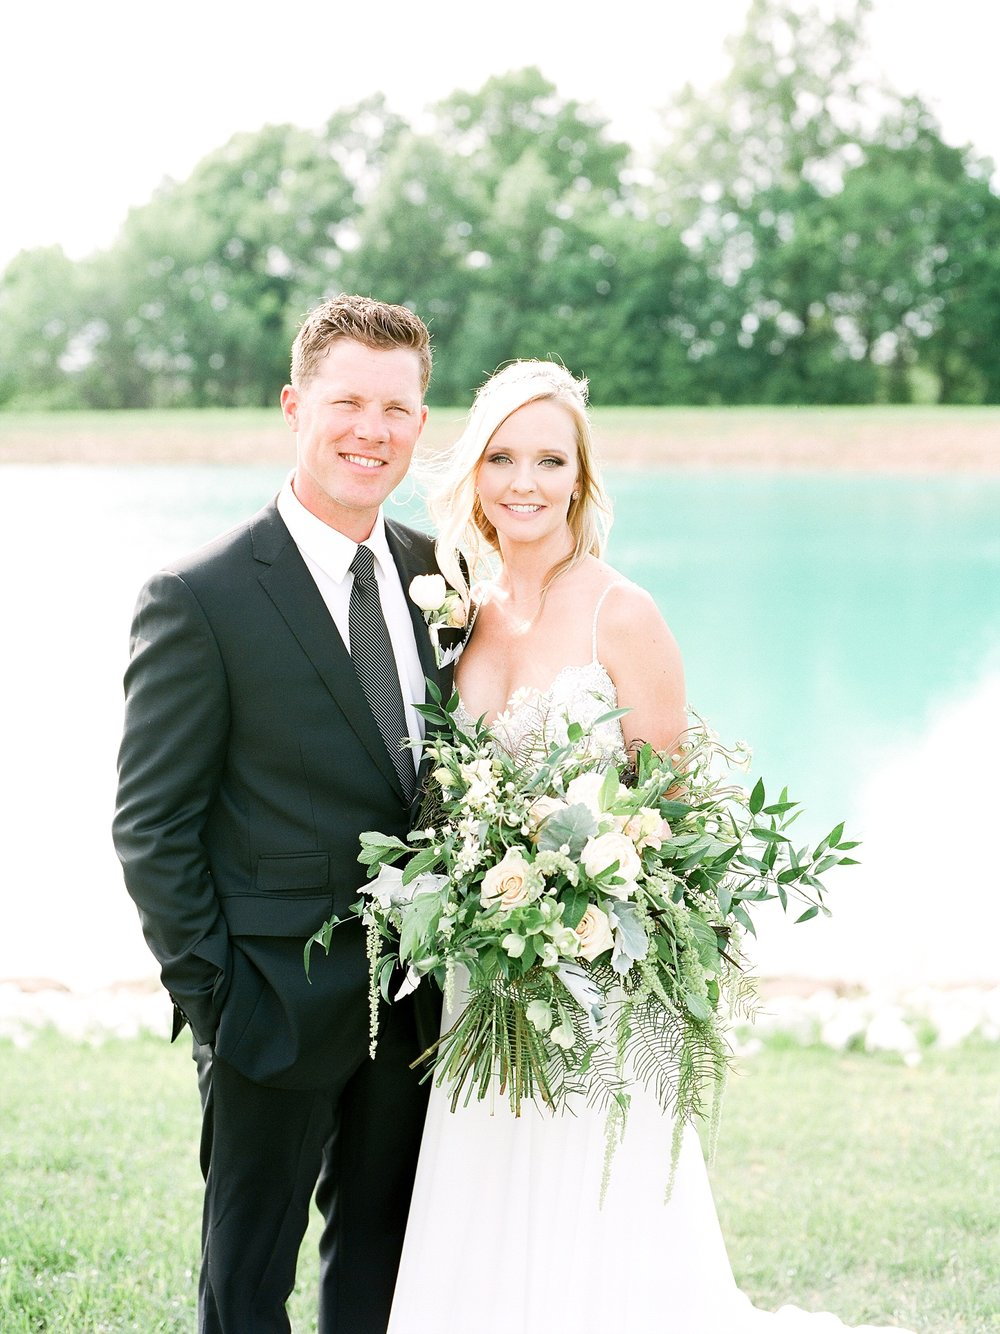 Textural Organic Wedding in All White Venue by Kelsi Kliethermes Wedding Photographer - Missouri, Midwest, and Destinations_0076.jpg